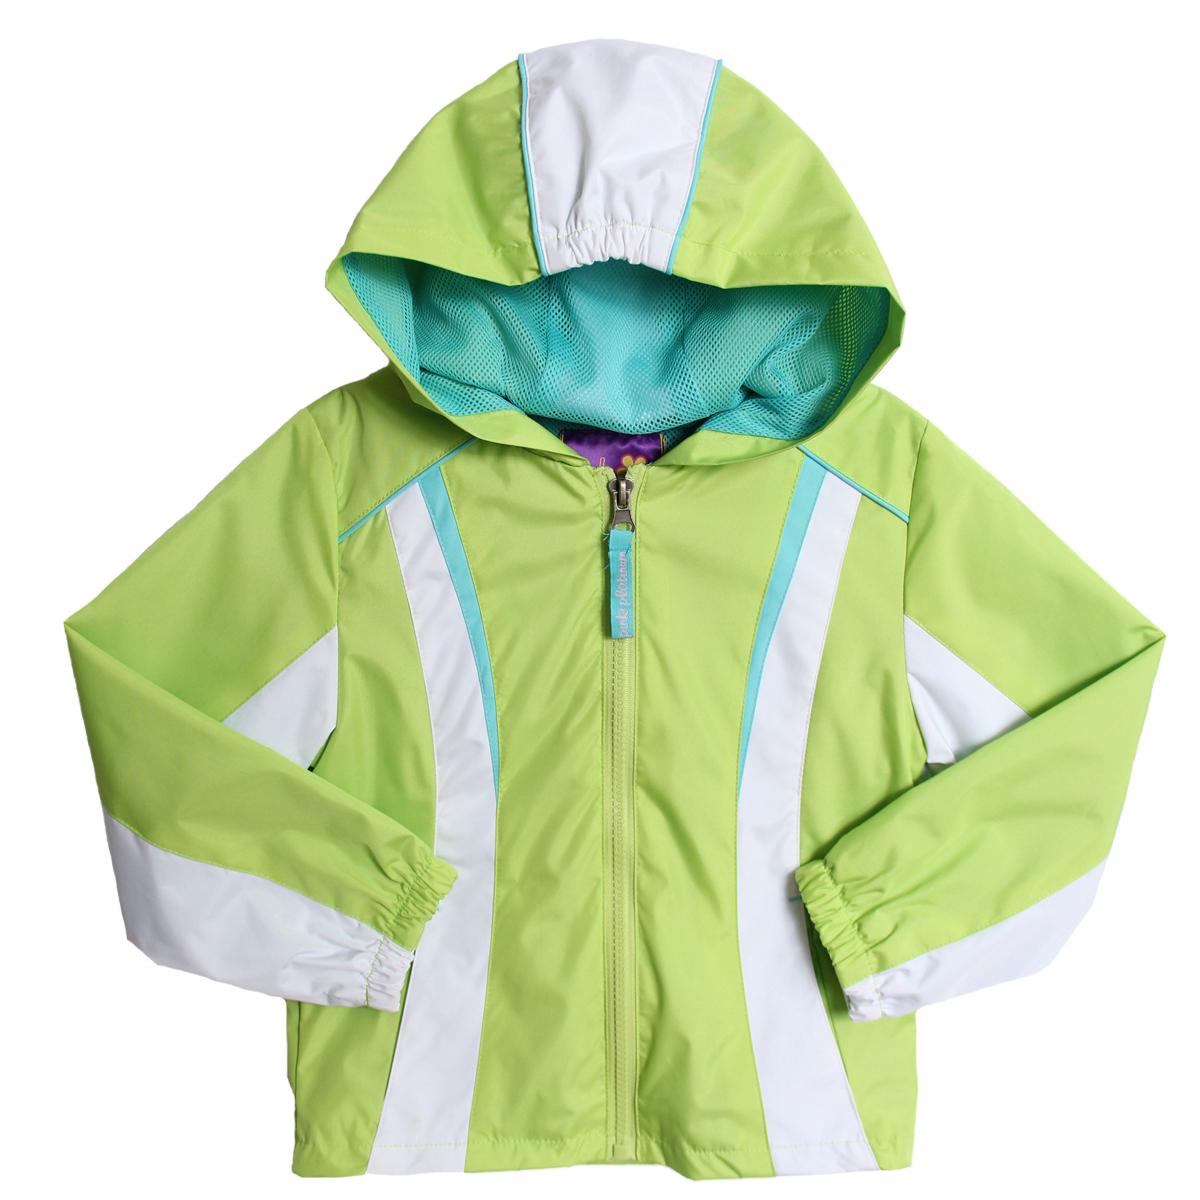 Pink Platinum Girls (4-6x) Hooded All Weather Lime Green Teal Spring Jacket at Sears.com